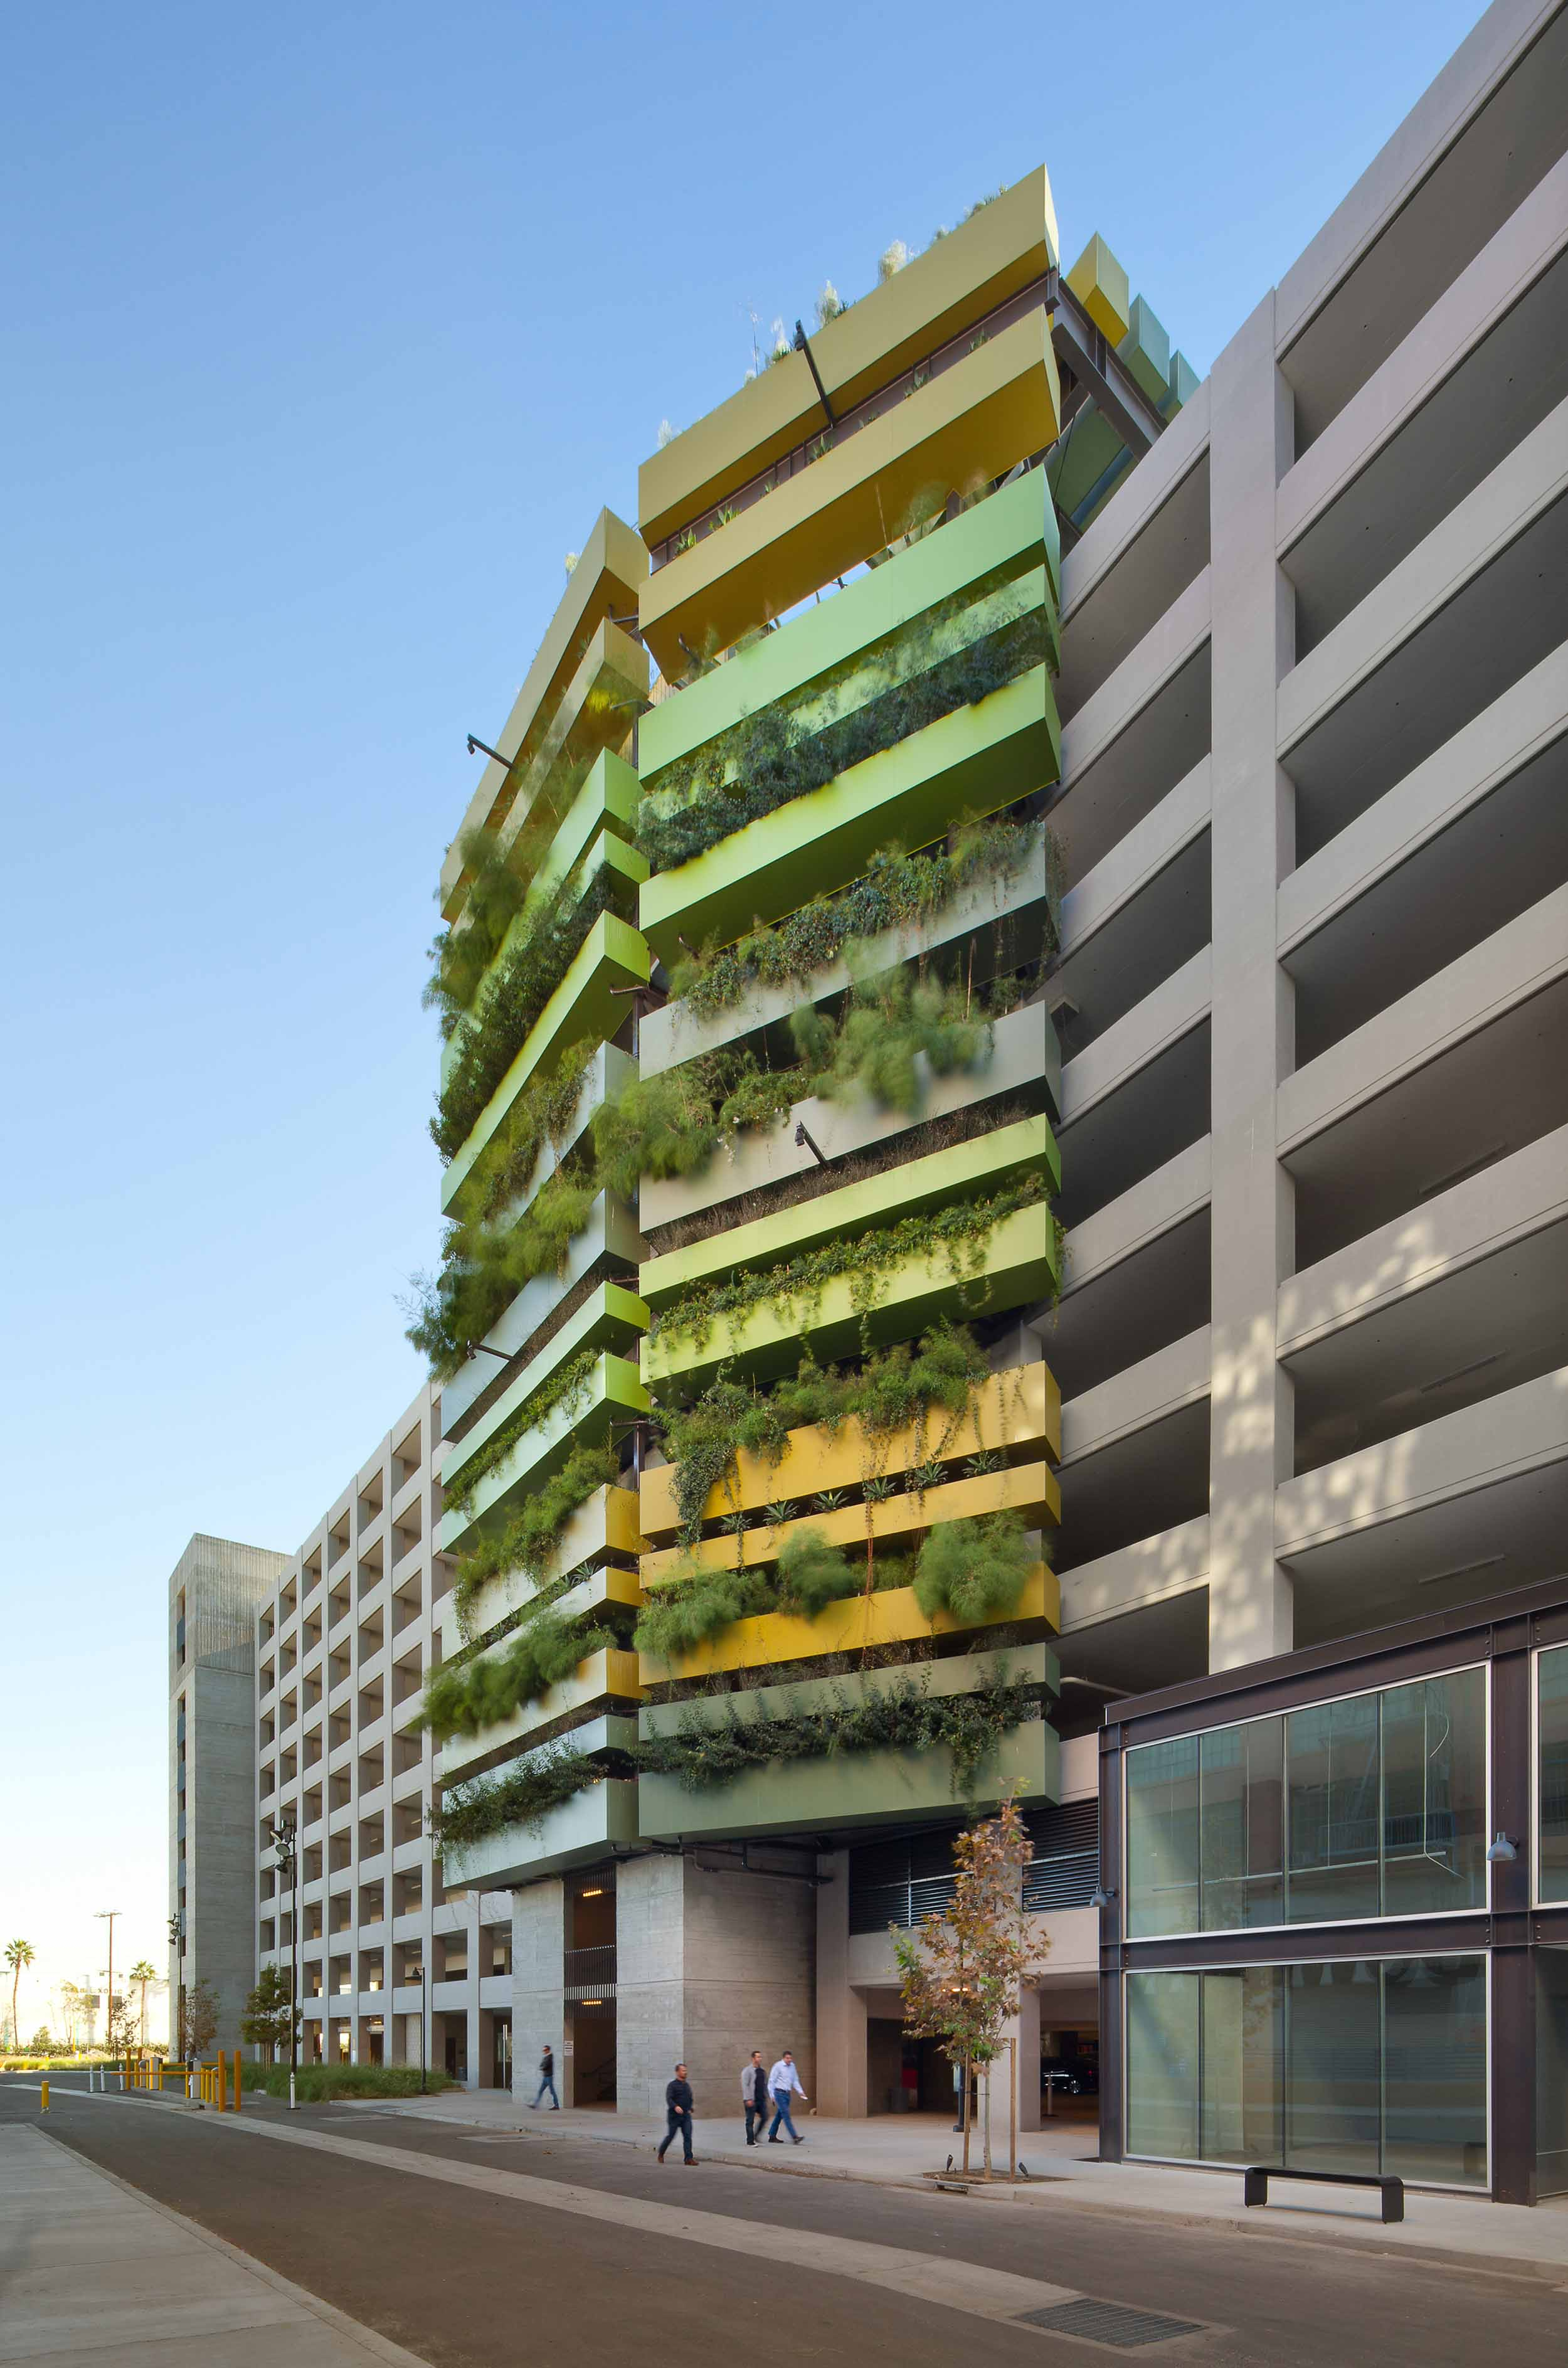 exterior shot of a garage with a green facade and plants cascading down